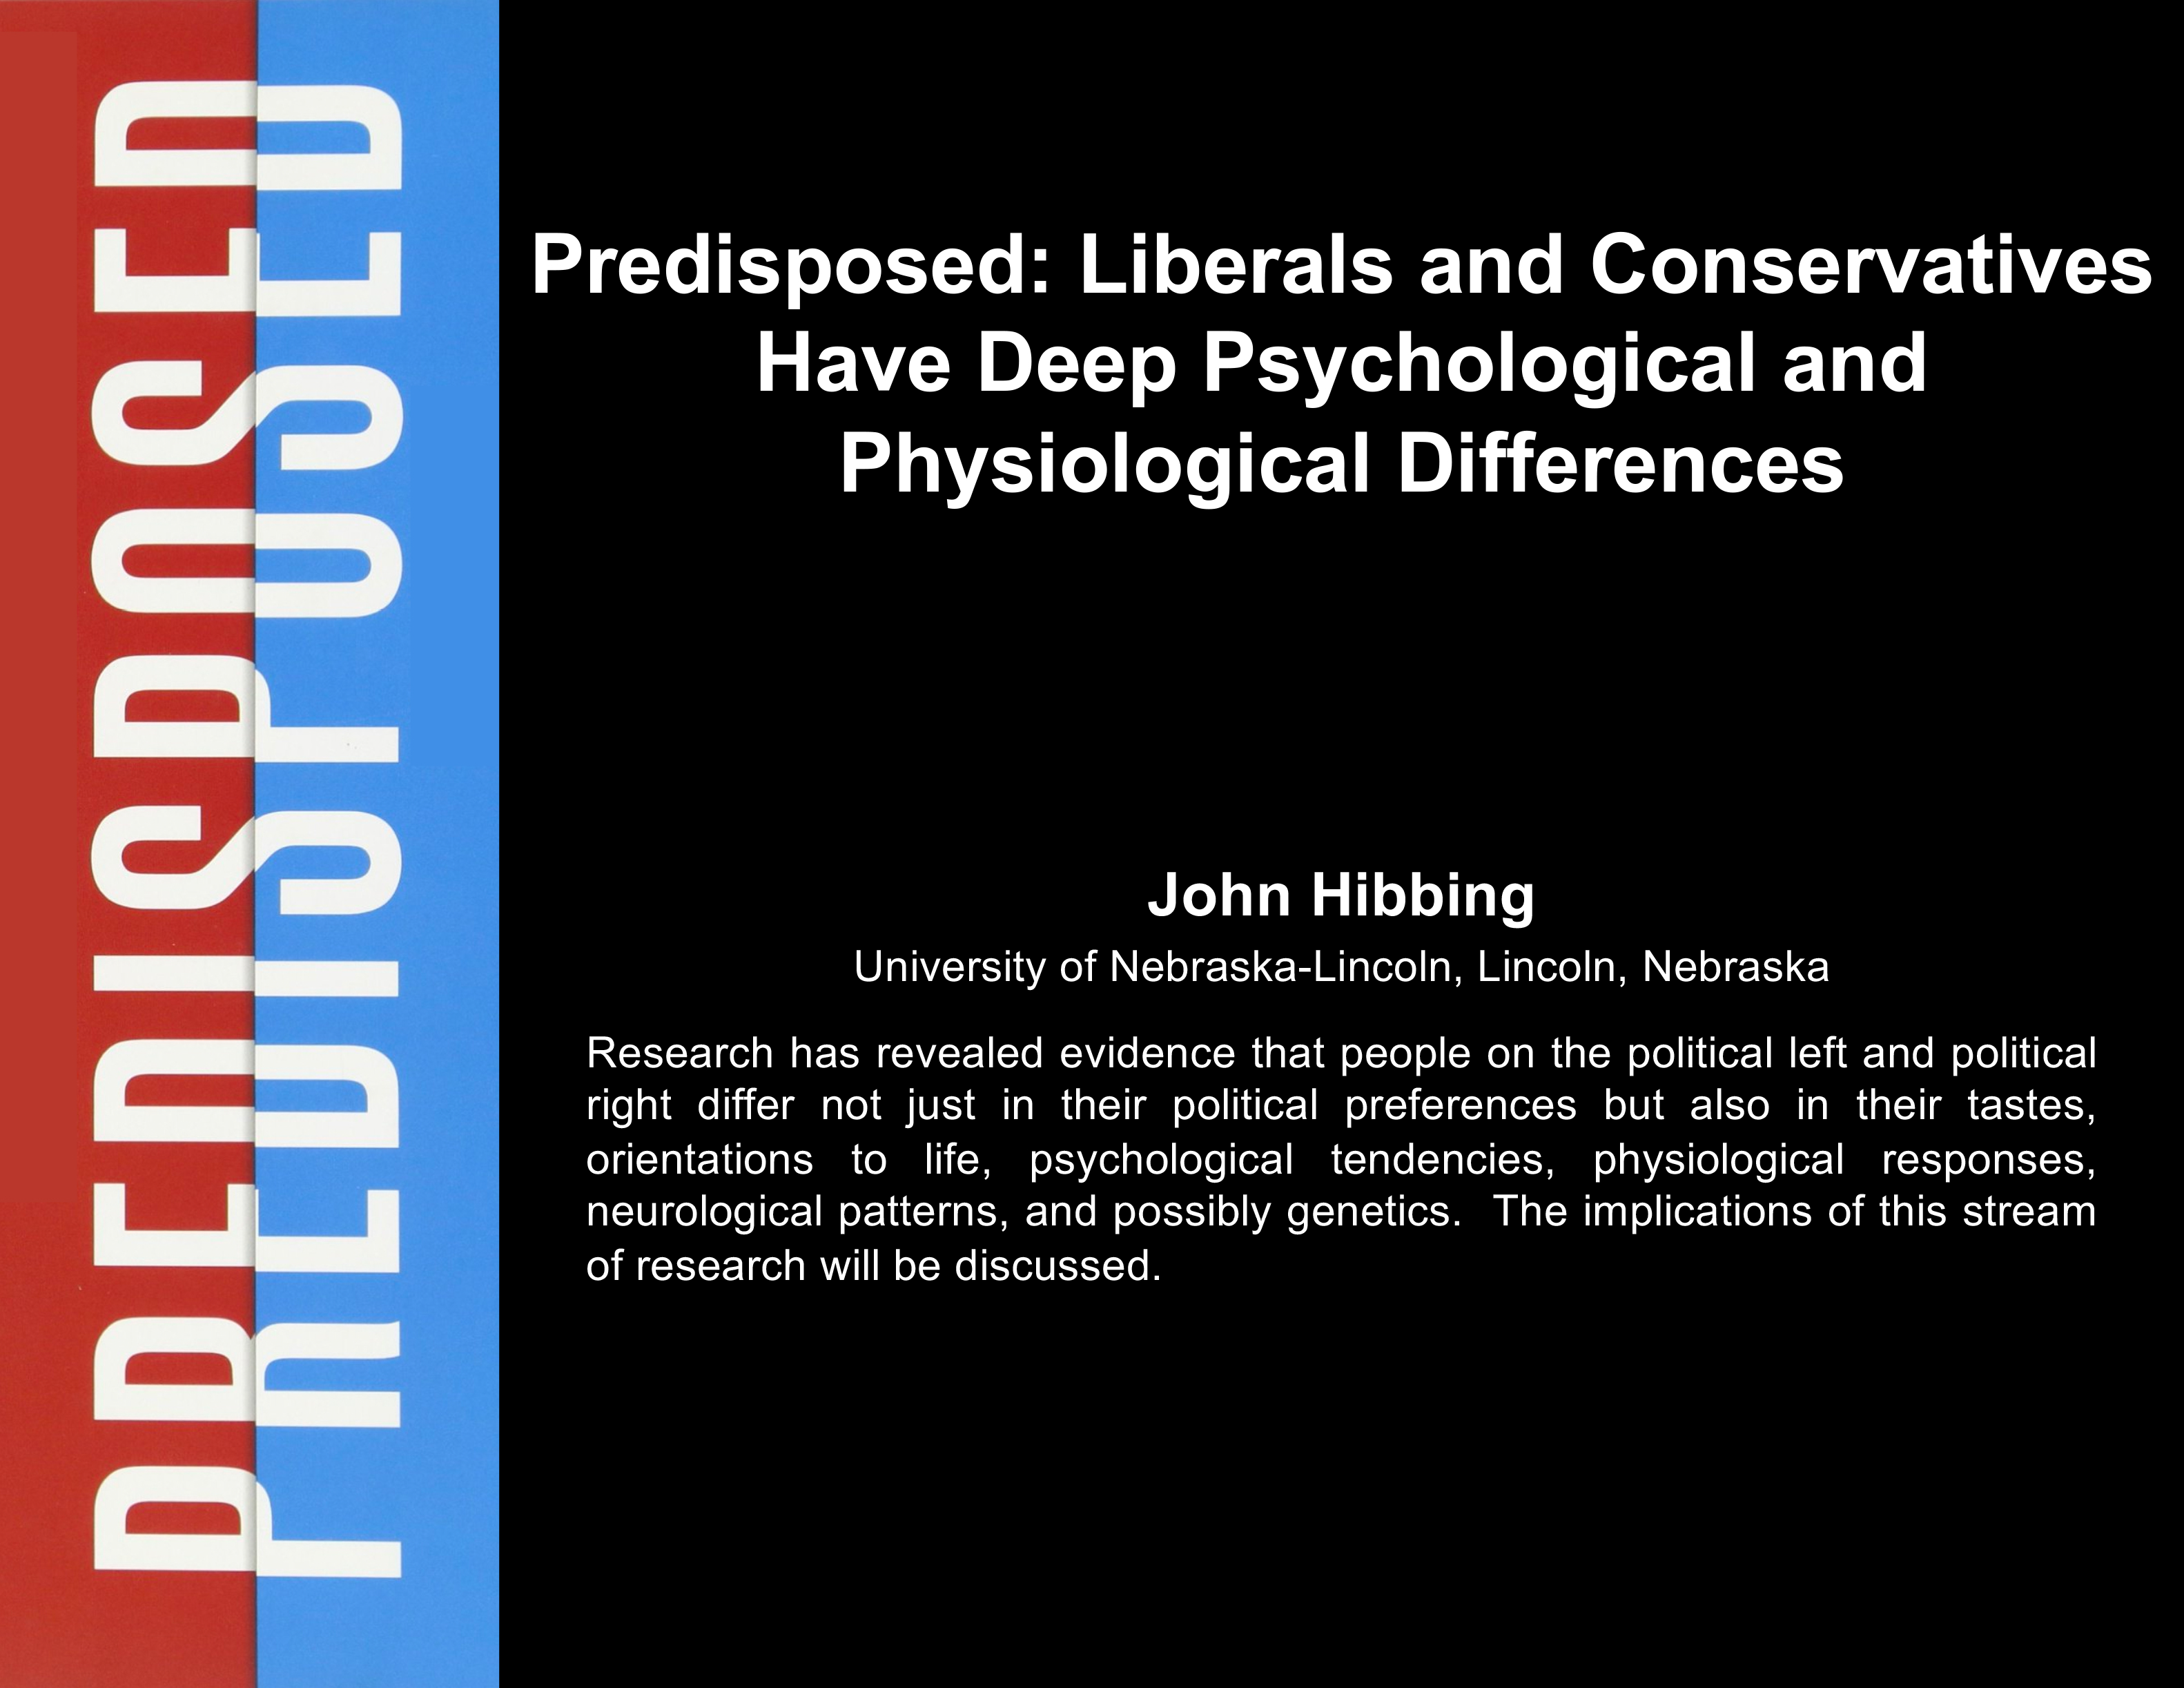 Plenary: Predisposed: Liberals and Conservatives Have Deep Psychological and Physiological Differences